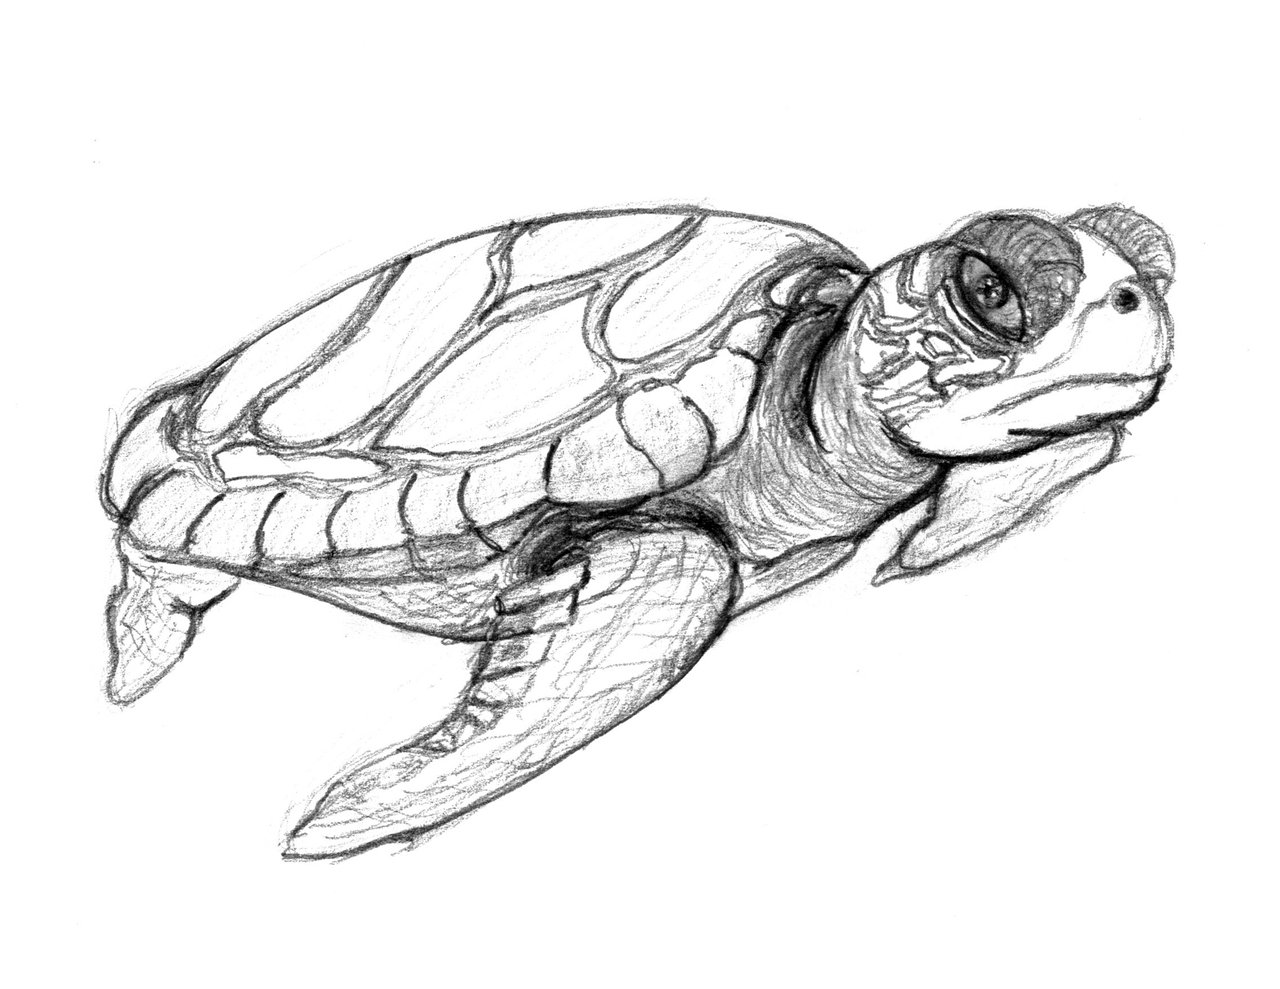 Drawn sea turtle line drawing Kids Printable For Turtle Coloring